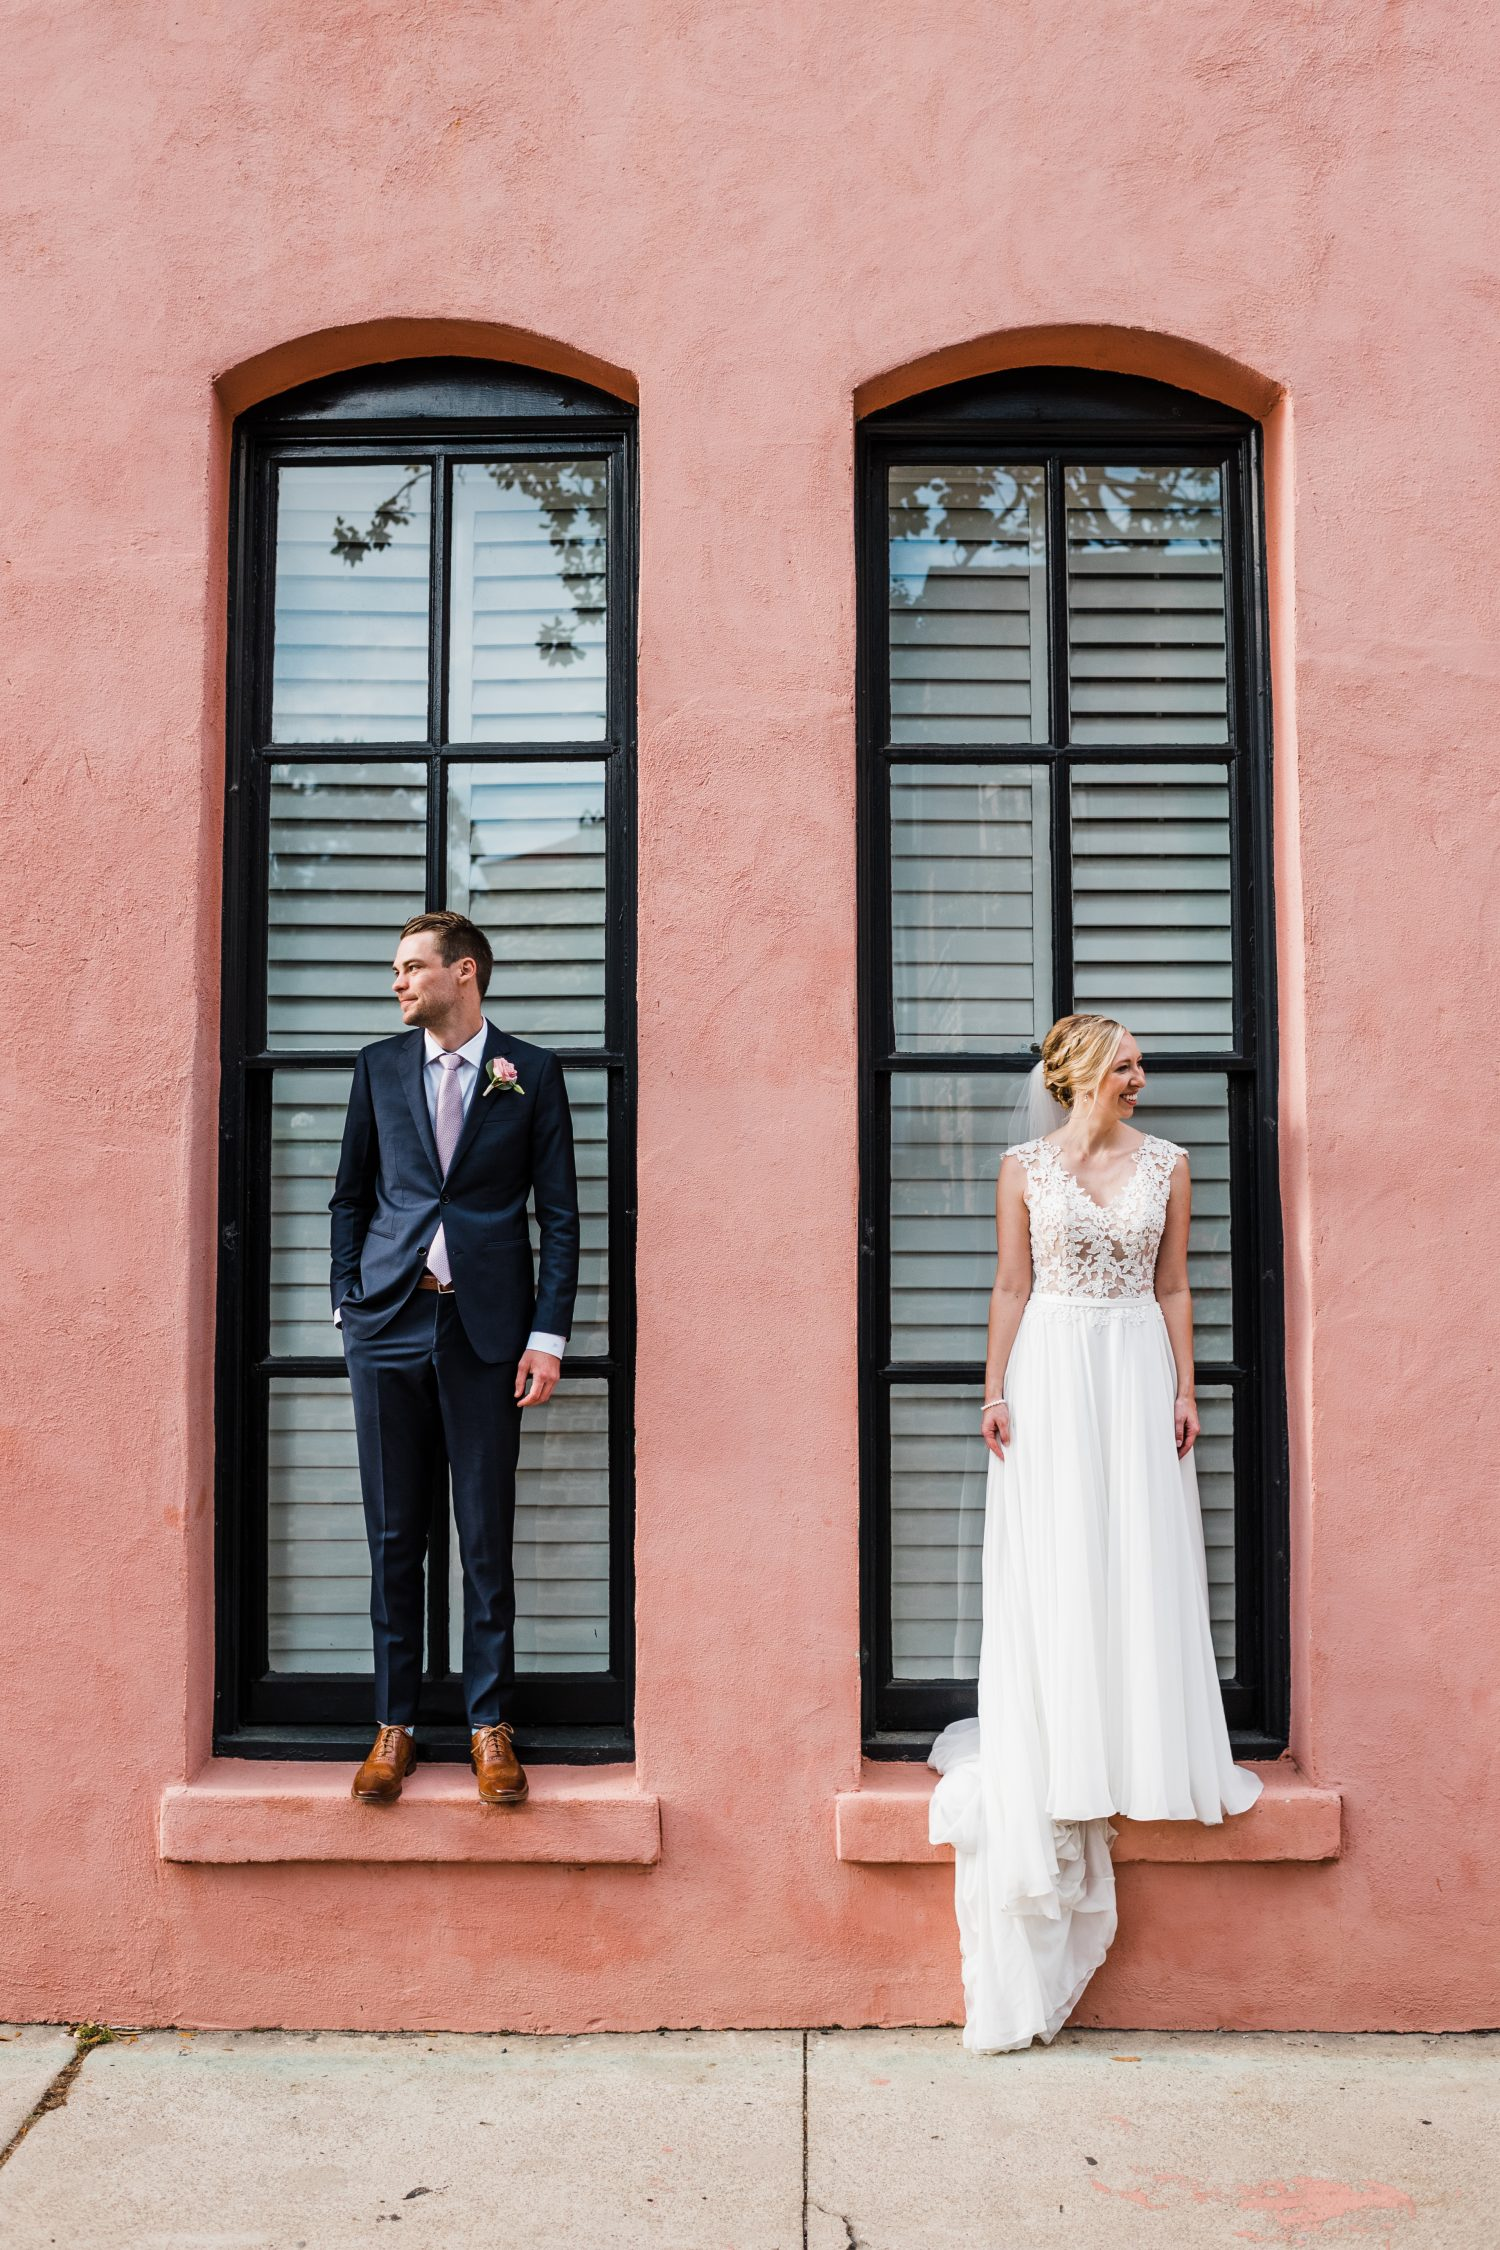 Easterday Creative | Adventurous wedding photographer and visual storyteller | Wedding photography | Charleston, SC